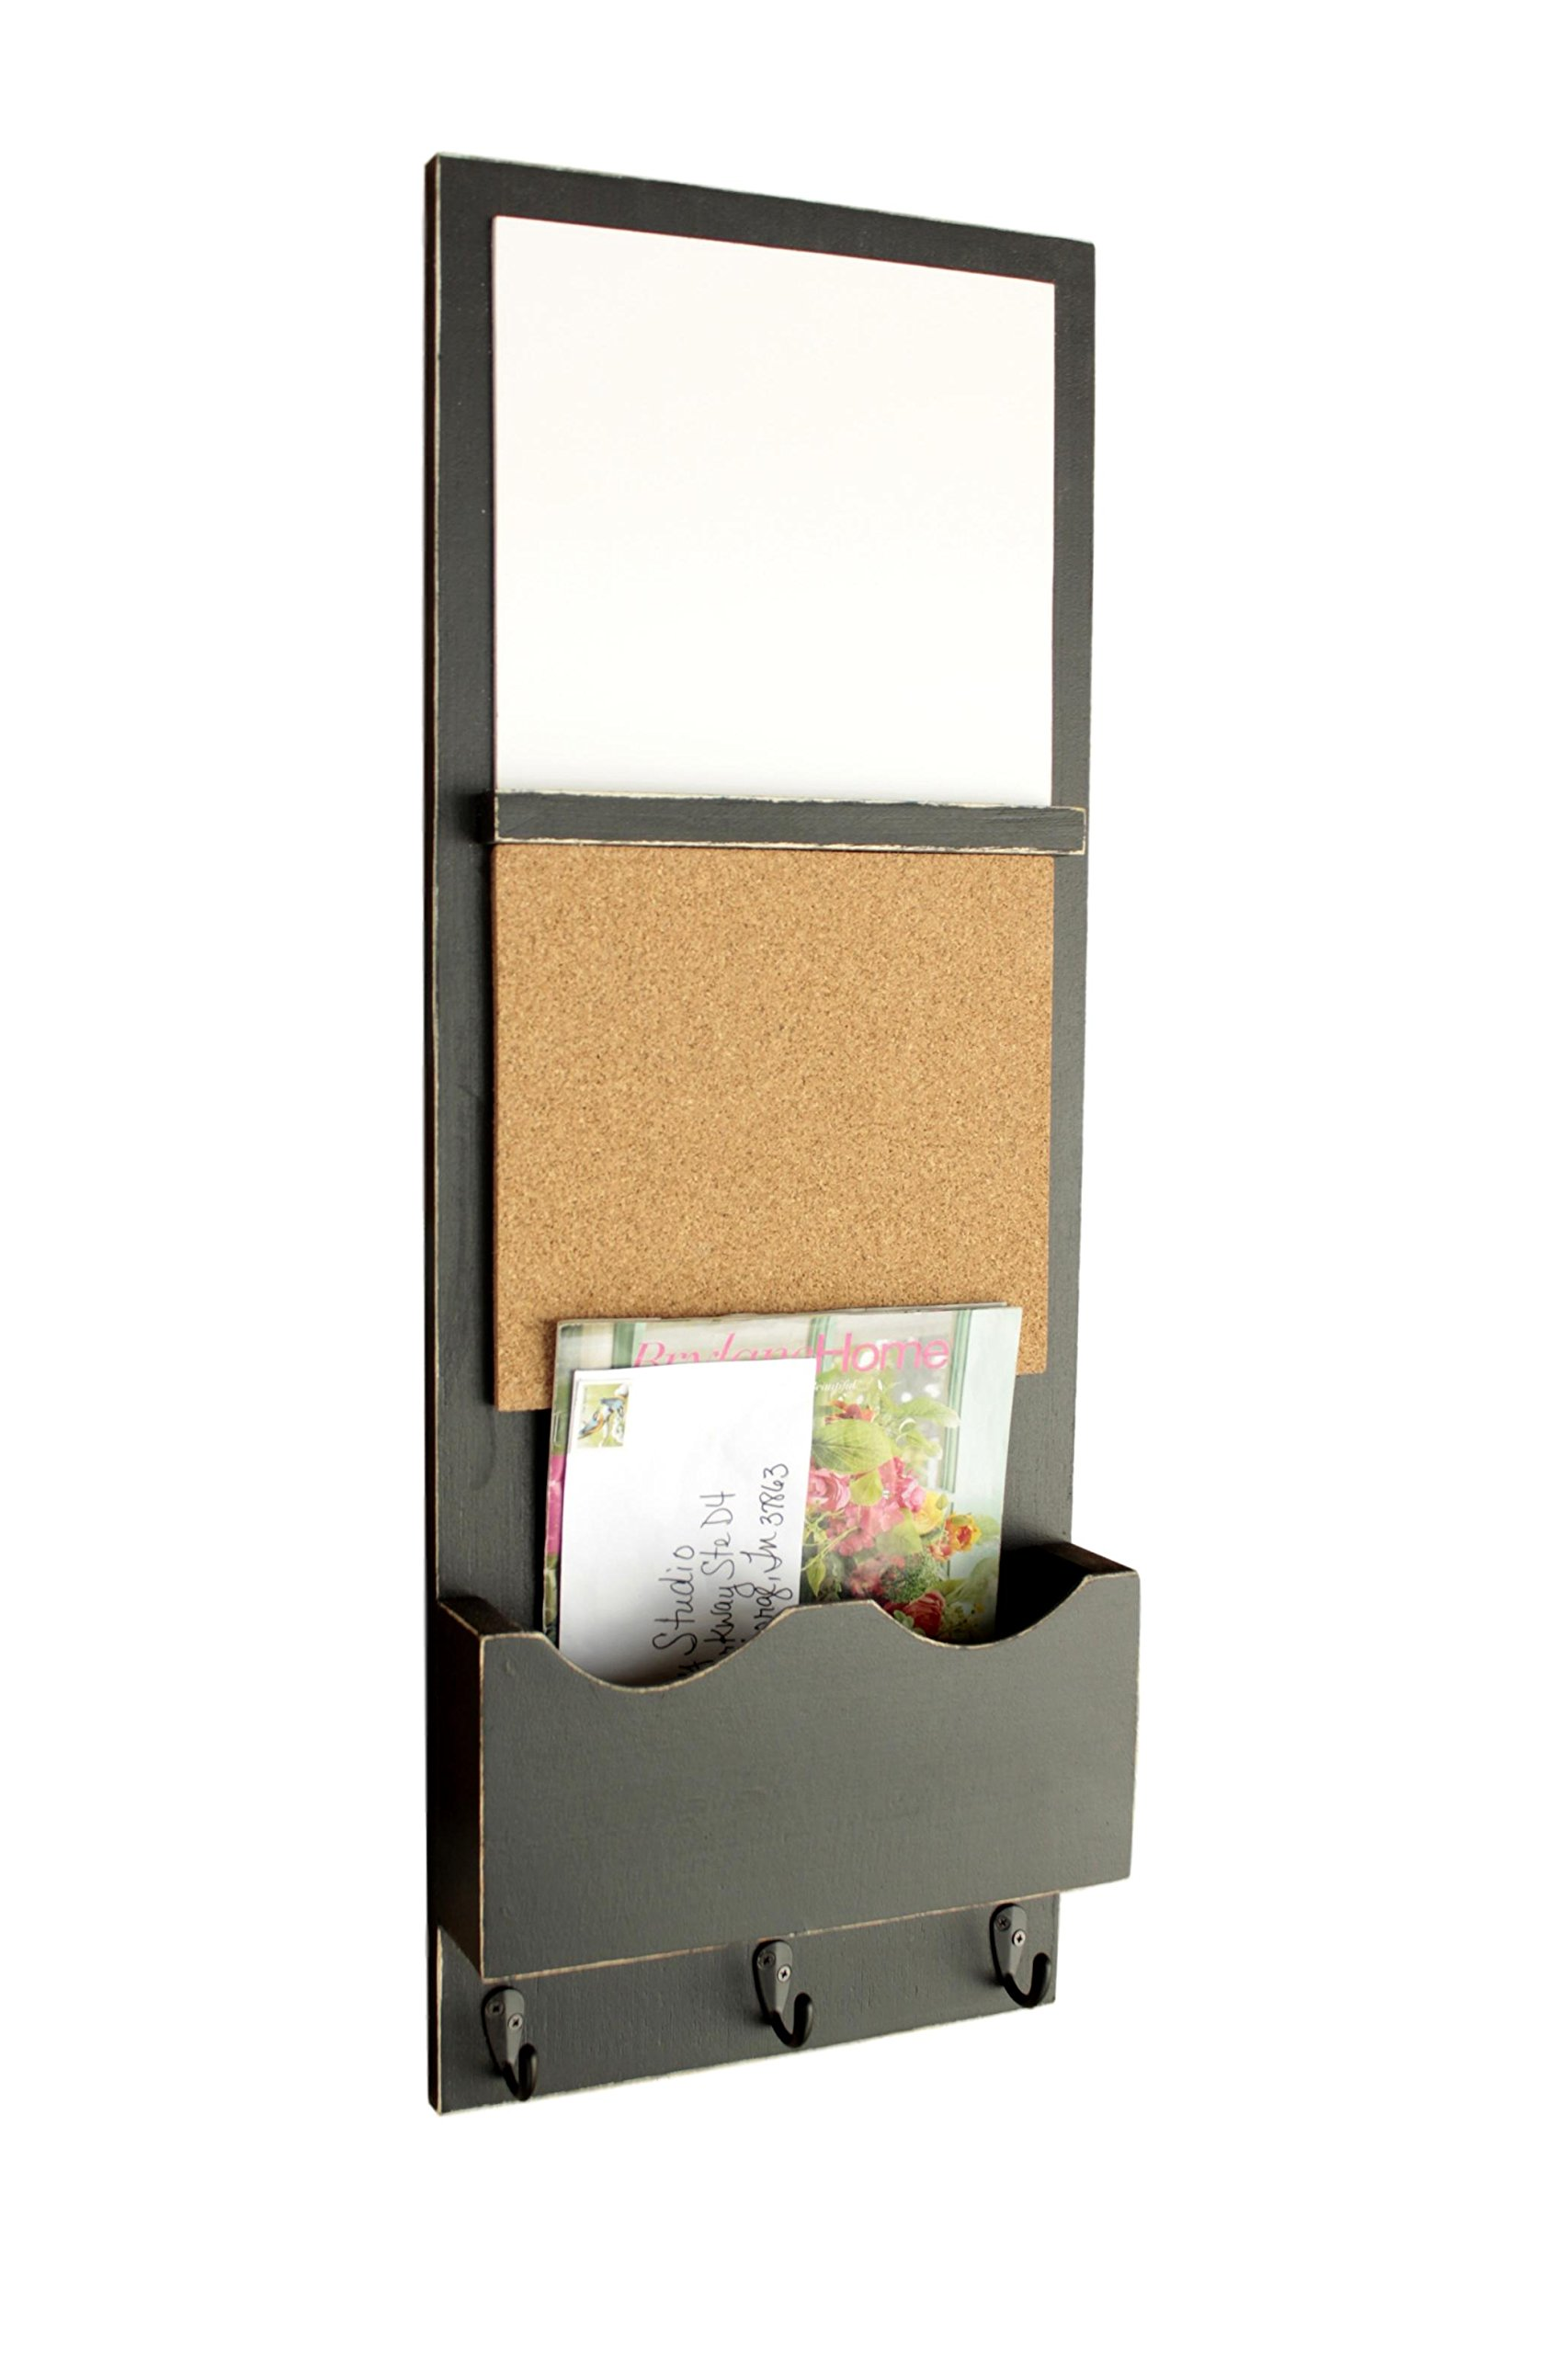 Legacy Studio Decor Message Center with White Board, Cork Board and Large Mail Slot (Distressed, Black)